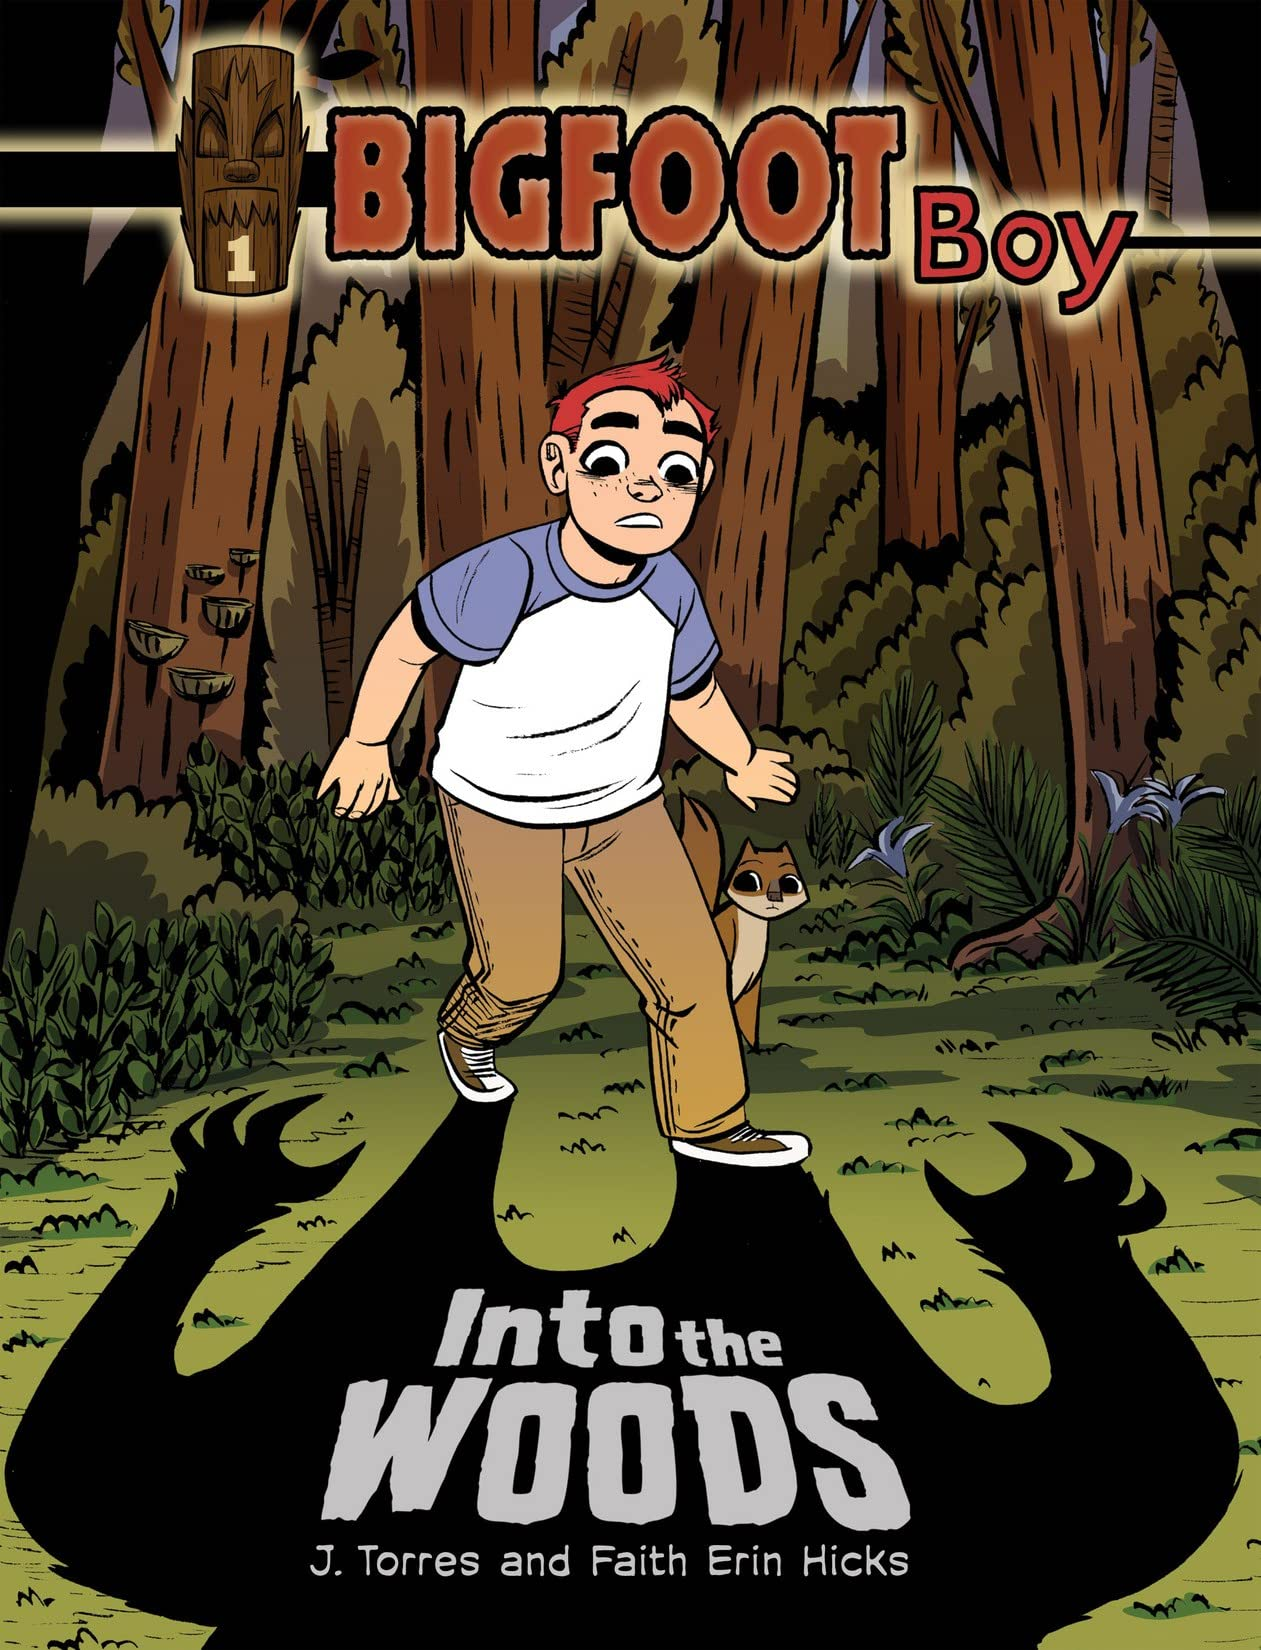 Bigfoot Boy Vol. 1: Into the Woods